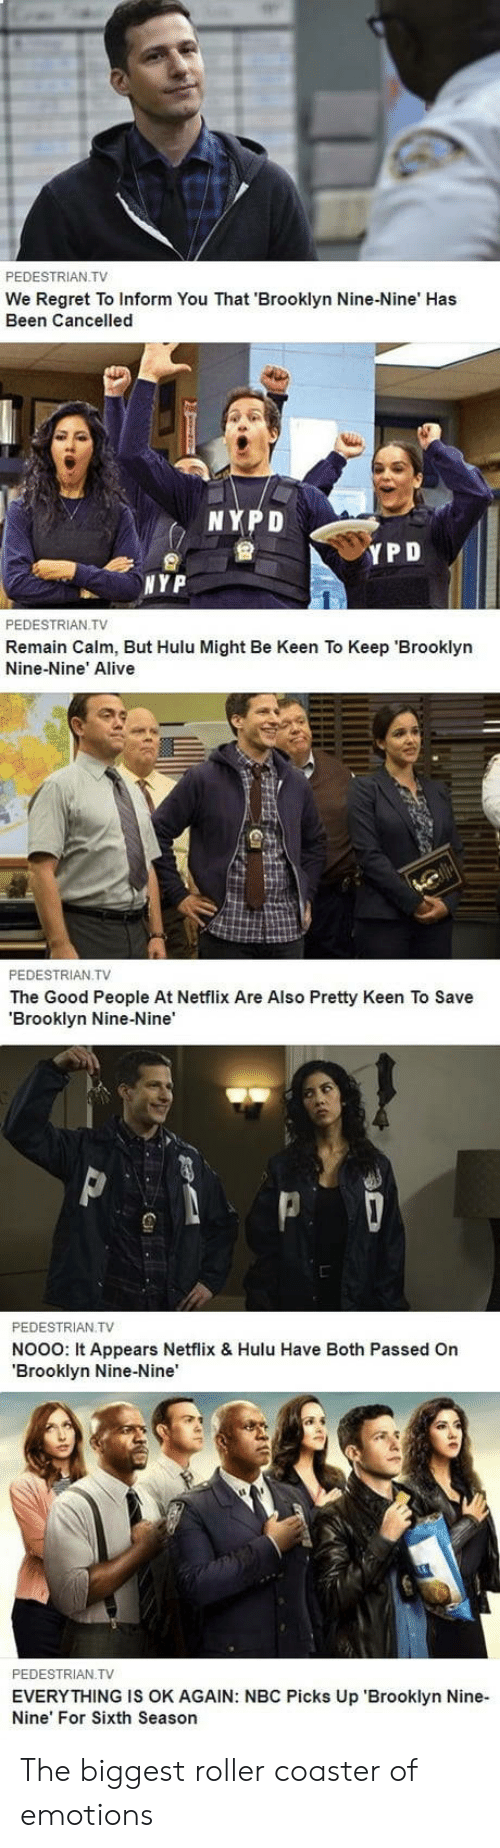 Alive, Hulu, and Netflix: PEDESTRIAN TV  We Regret To Inform You That 'Brooklyn Nine-Nine' Has  Been Cancelled  NYPD  會  YPD  NYP  PEDESTRIAN.TV  Remain Calm, But Hulu Might Be Keen To Keep 'Brooklyn  Nine-Nine' Alive  PEDESTRIAN TV  The Good People At Netflix Are Also Pretty Keen To Save  'Brooklyn Nine-Nine'  PEDESTRIAN.TV  NooO: It Appears Netflix & Hulu Have Both Passed On  'Brooklyn Nine-Nine  PEDESTRIAN TV  EVERYTHING IS OK AGAIN: NBC Picks Up 'Brooklyn Nine-  Nine' For Sixth Season The biggest roller coaster of emotions